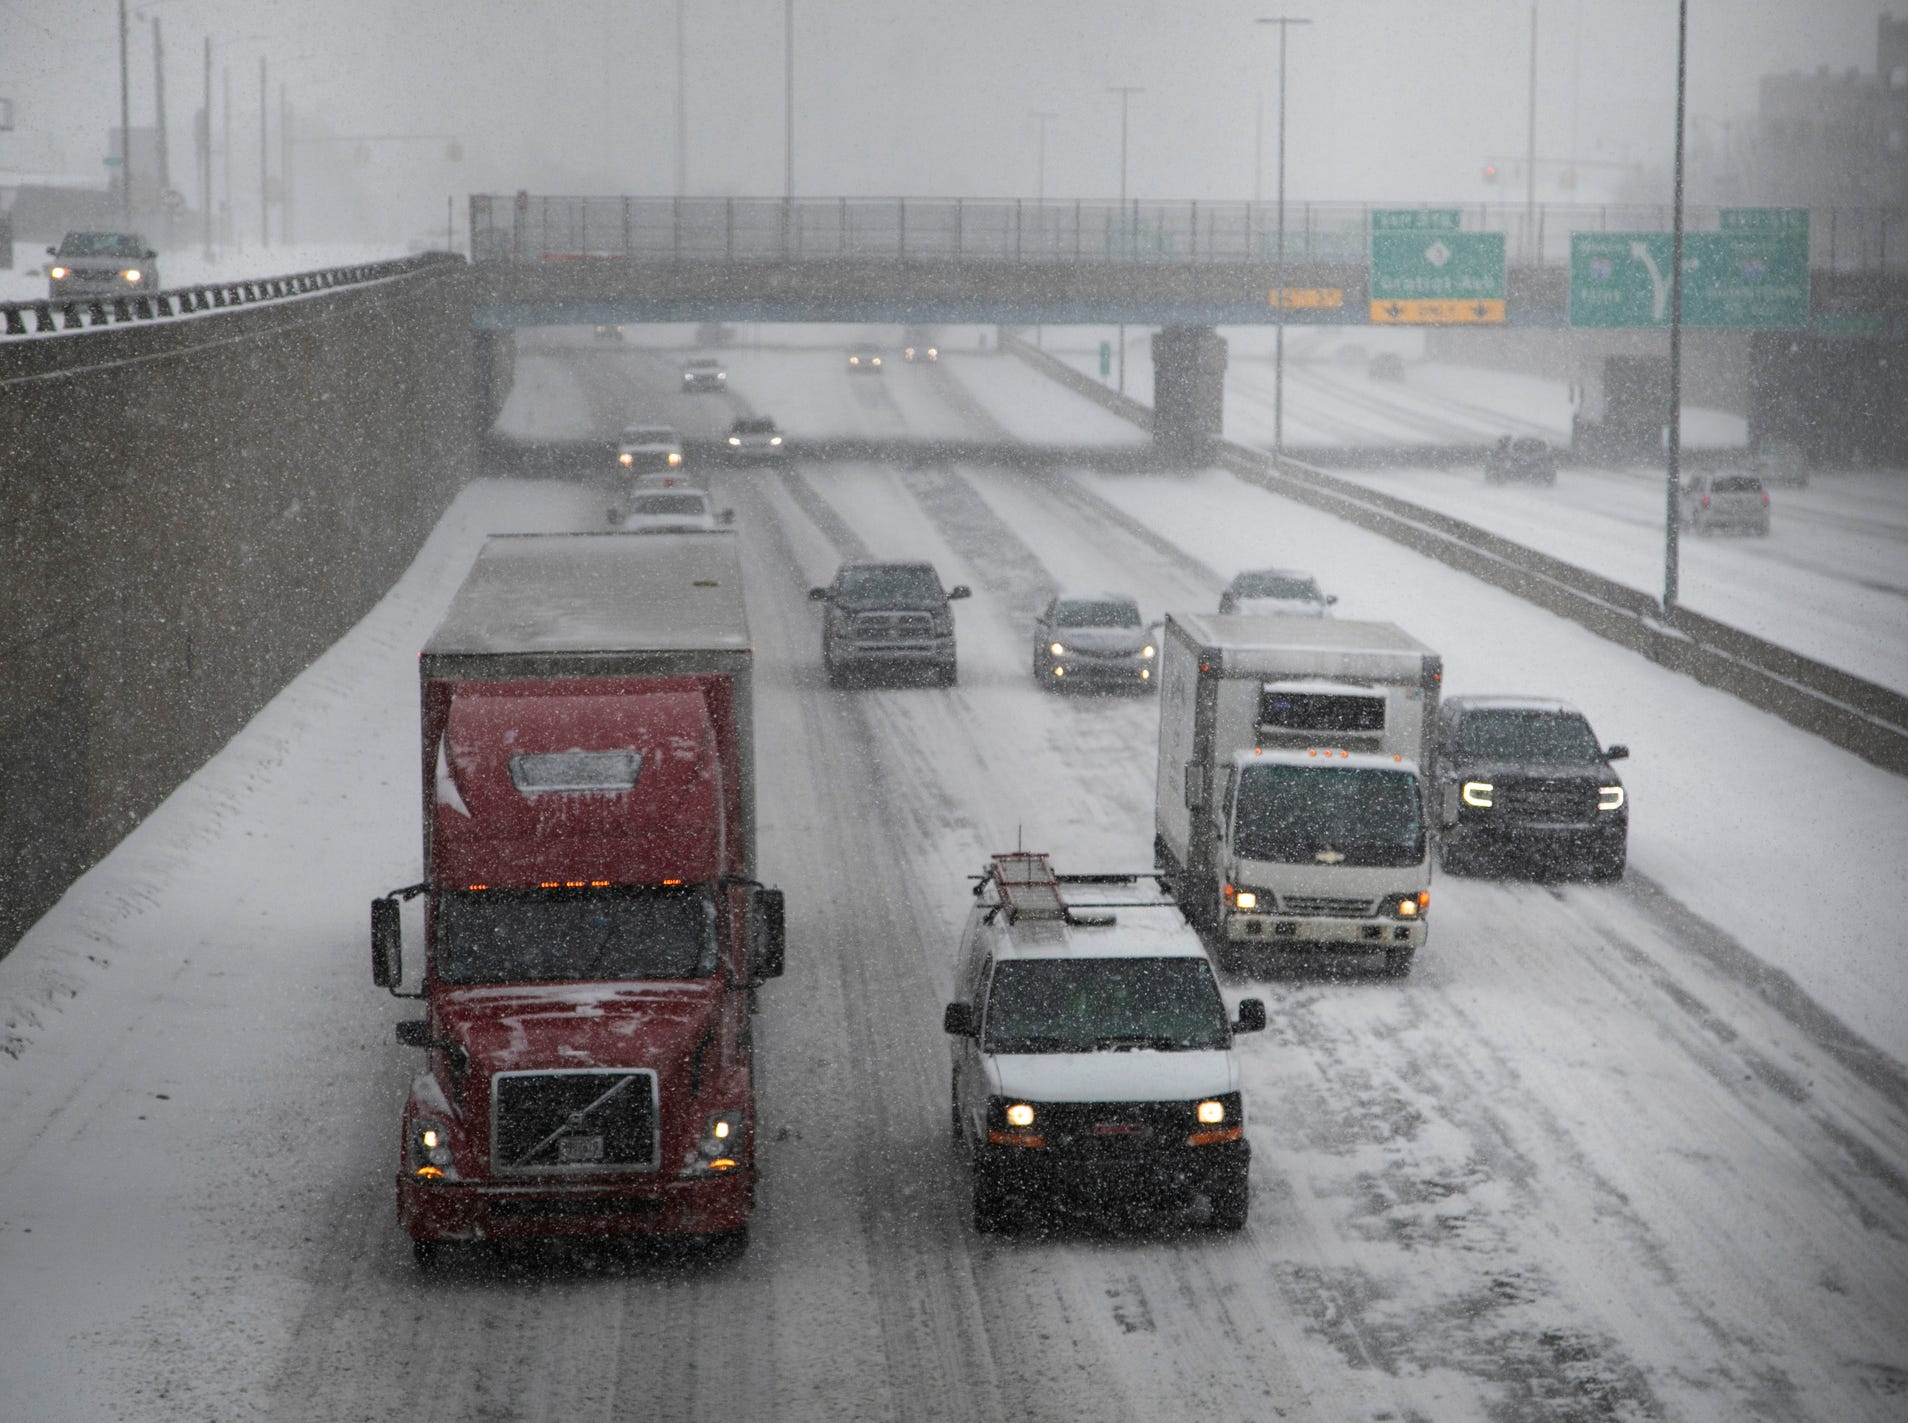 Steady traffic heads southbound on I-75 as heavy snows hit metro Detroit on Monday, Jan. 28, 2019.